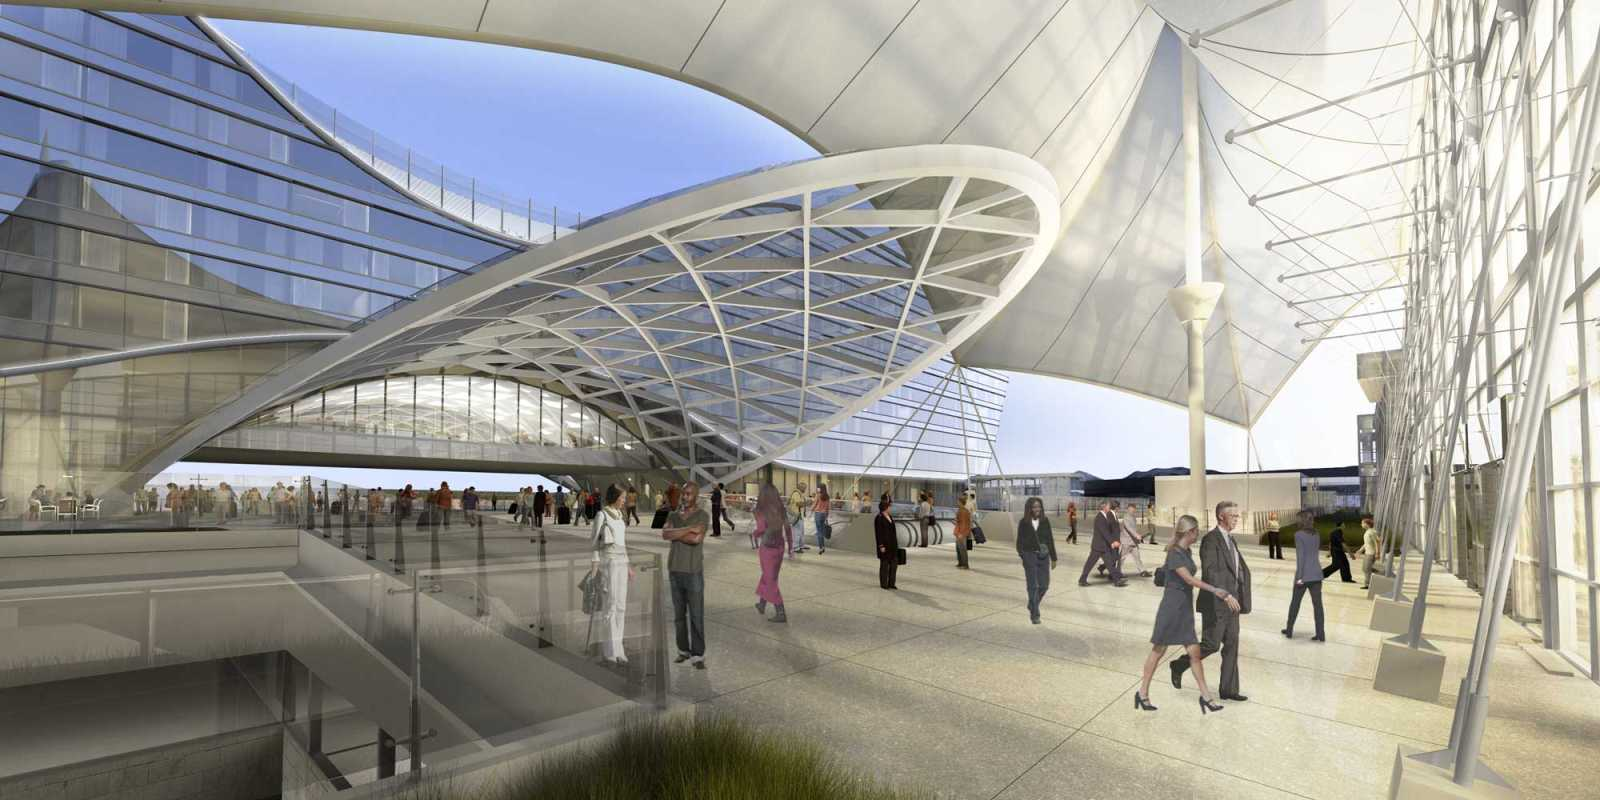 architecture now and The Future: DENVER INTERNATIONAL ...